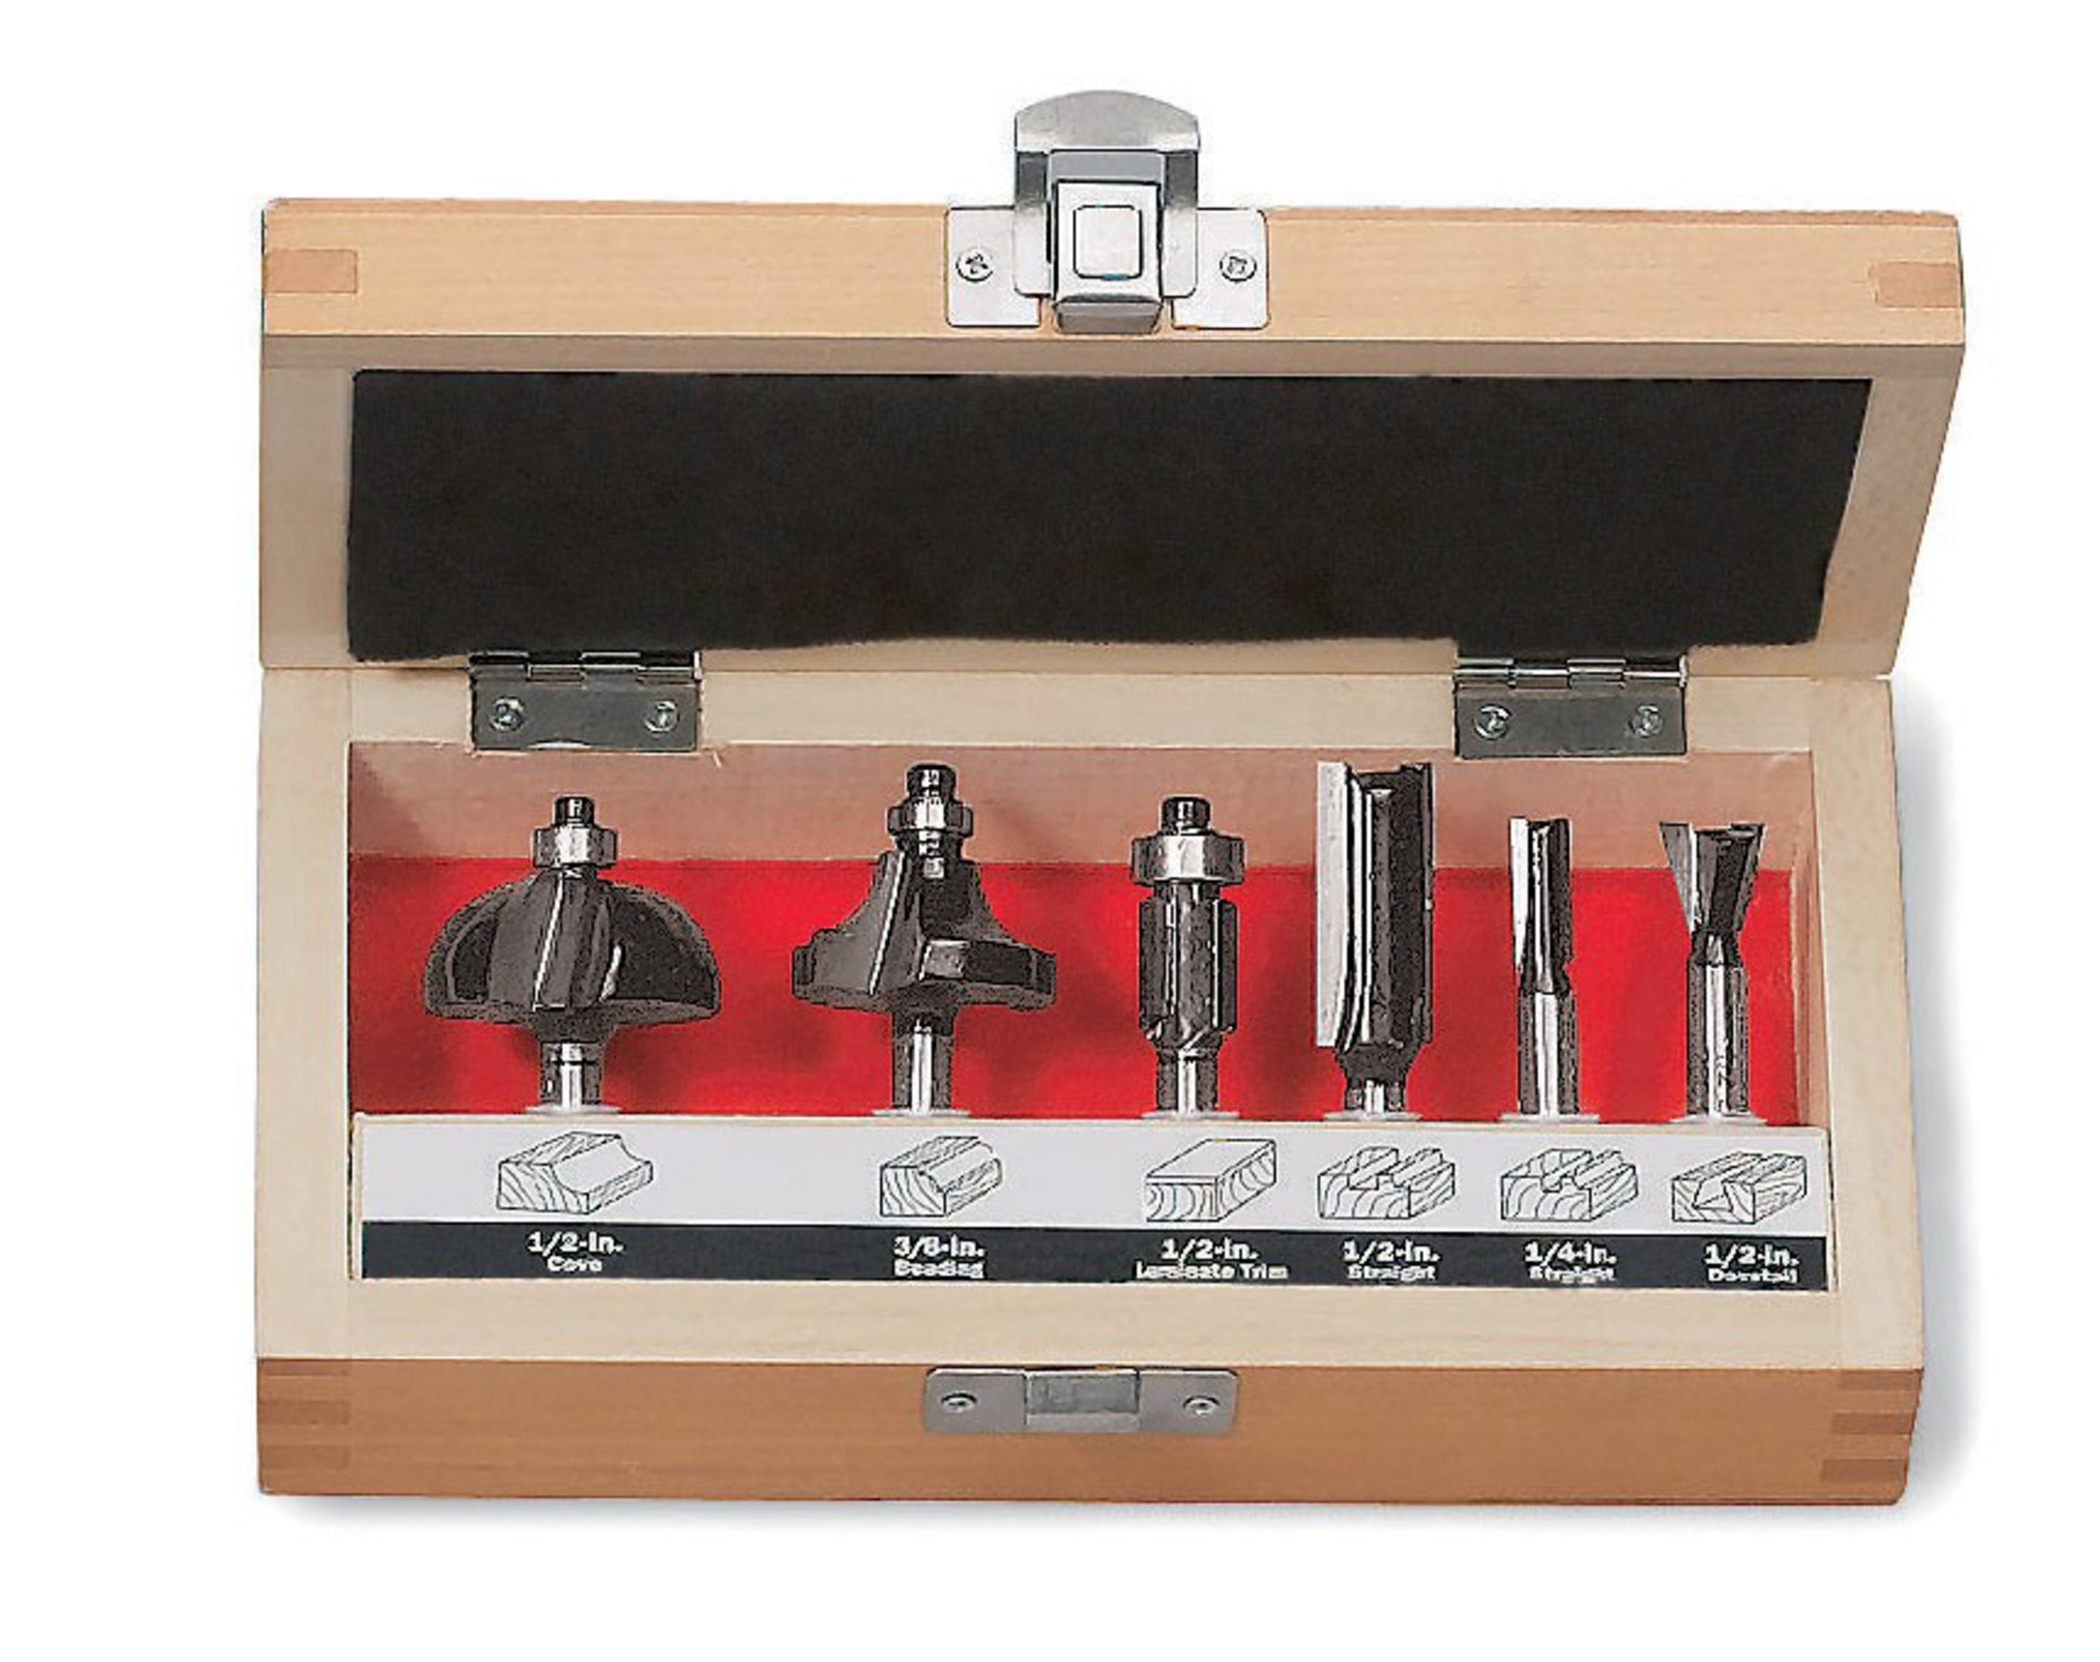 Sears Craftsman Commercial Router